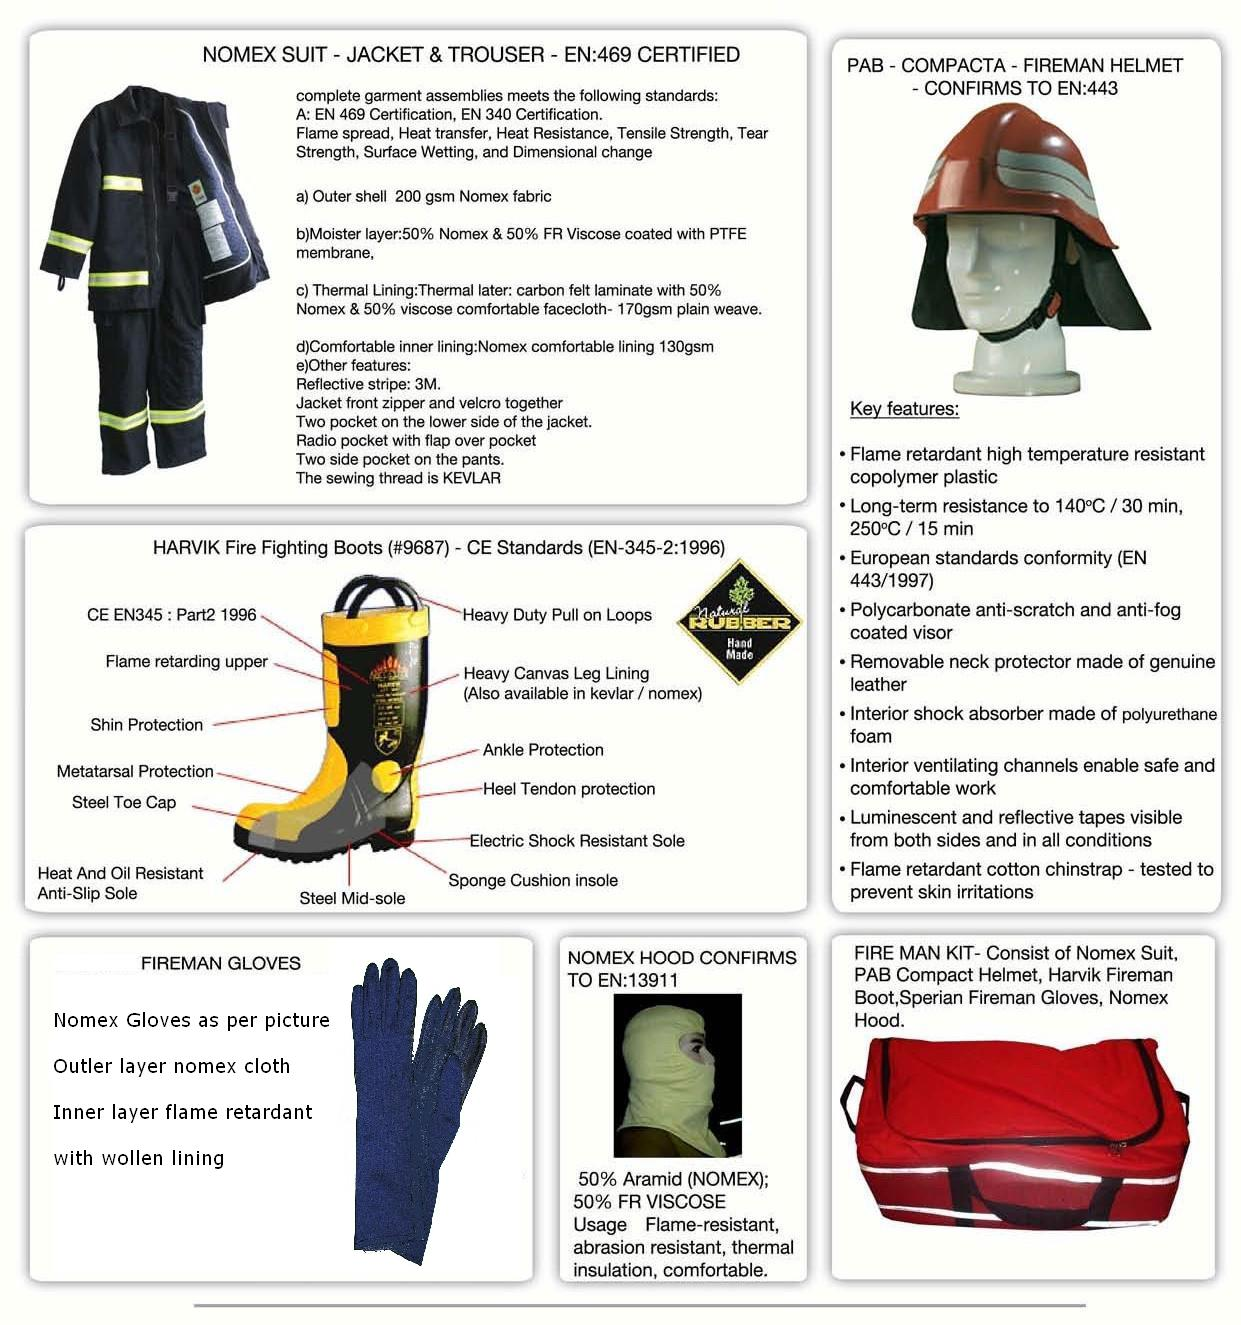 Fire Proximity Suit Hand Gloves Hose Coupling Aluminized